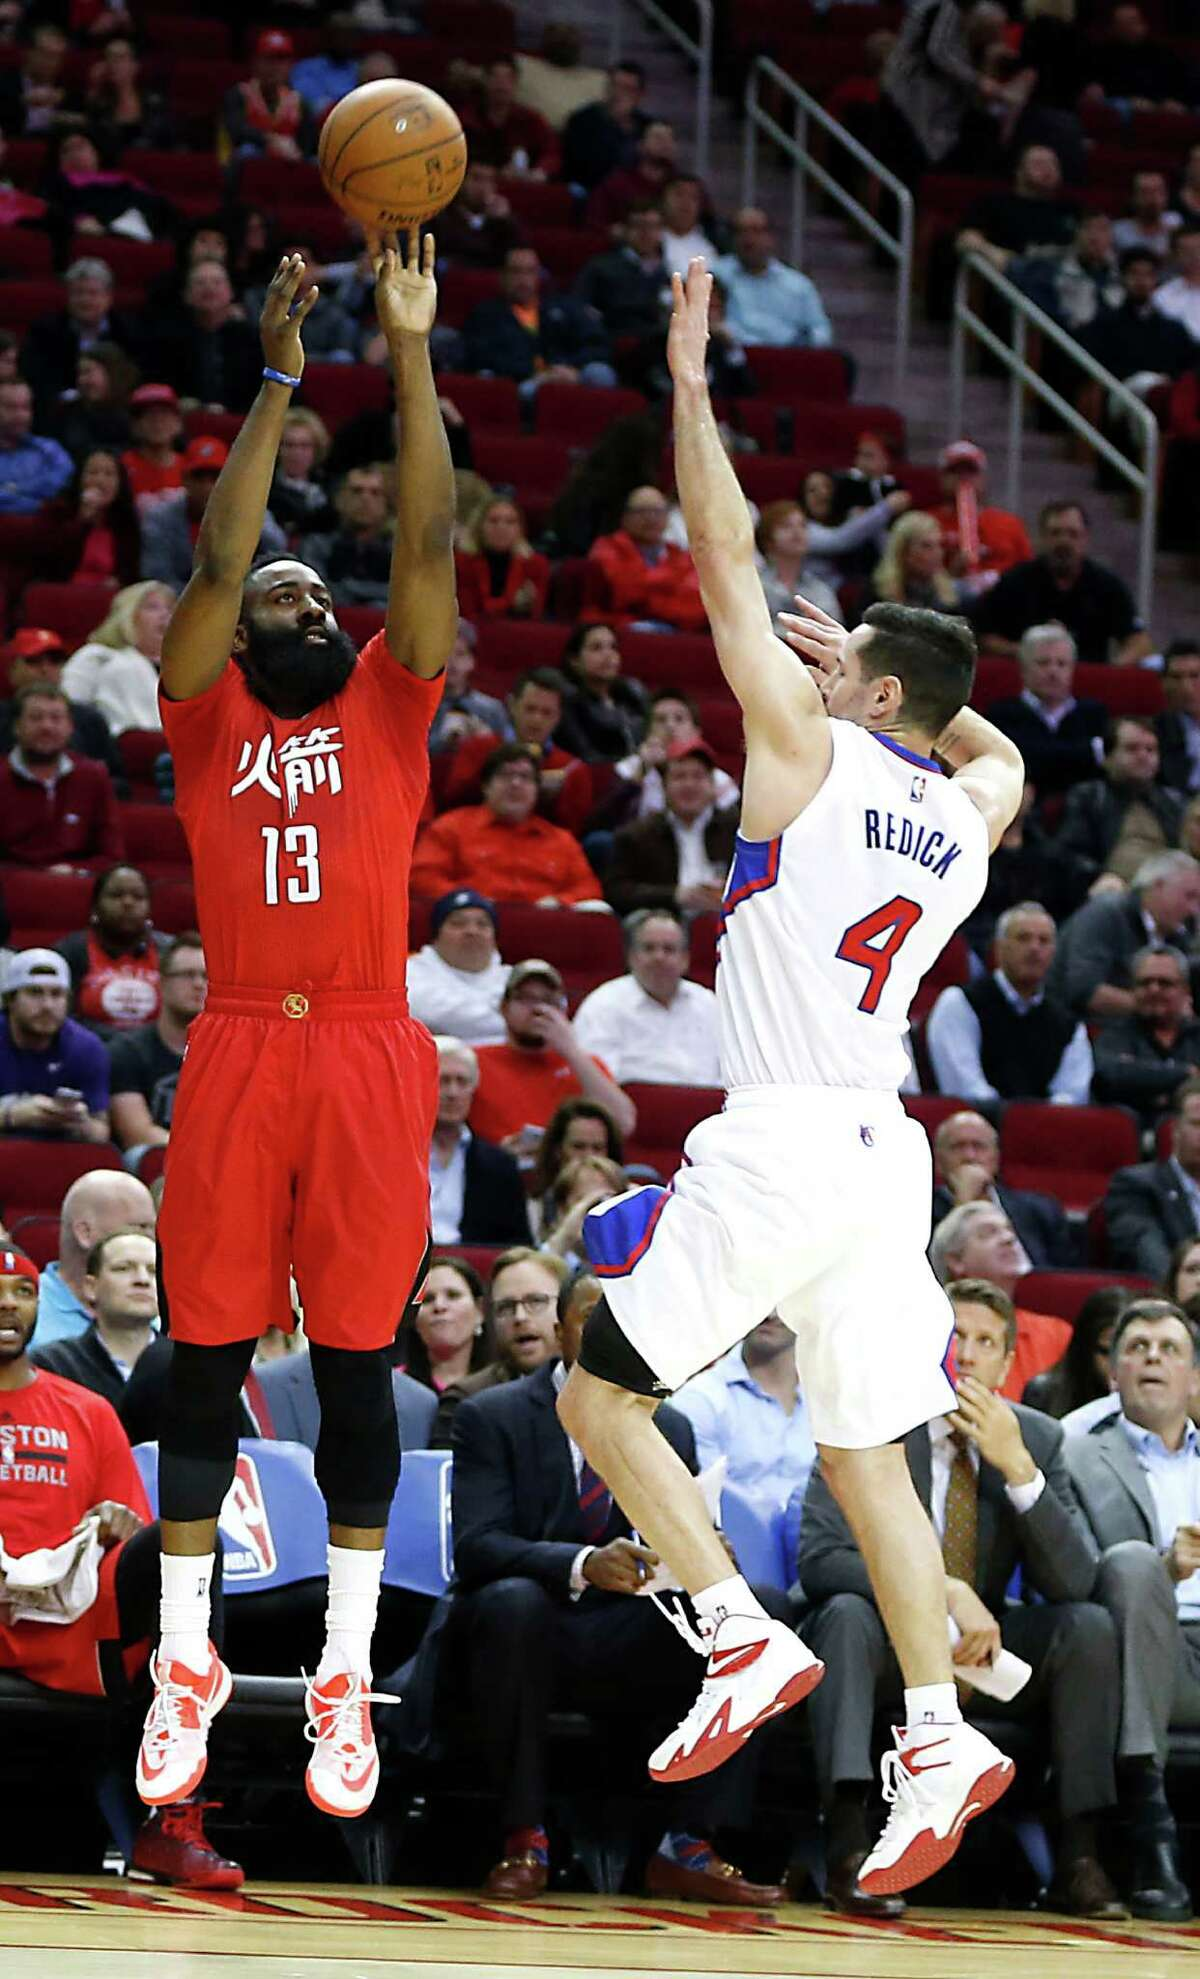 Harden shoots against L.A. Clippers guard J.J. Redick.